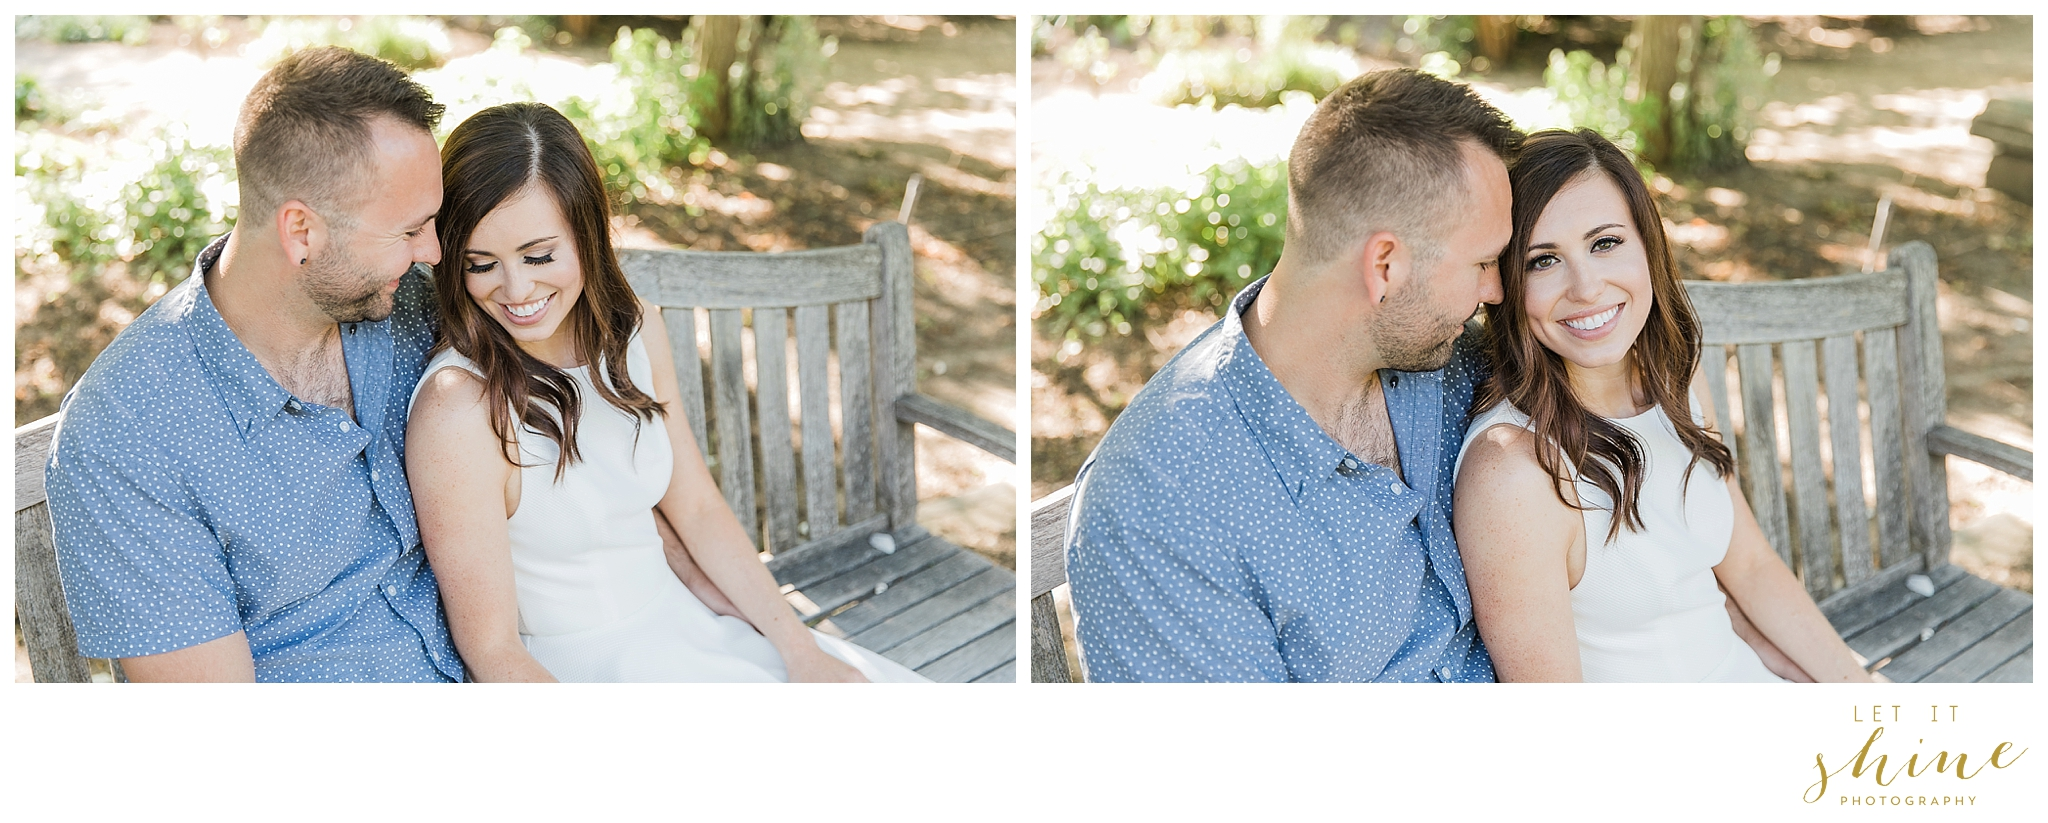 Boise Engagement Photographer Botanical Gardens-9407.jpg